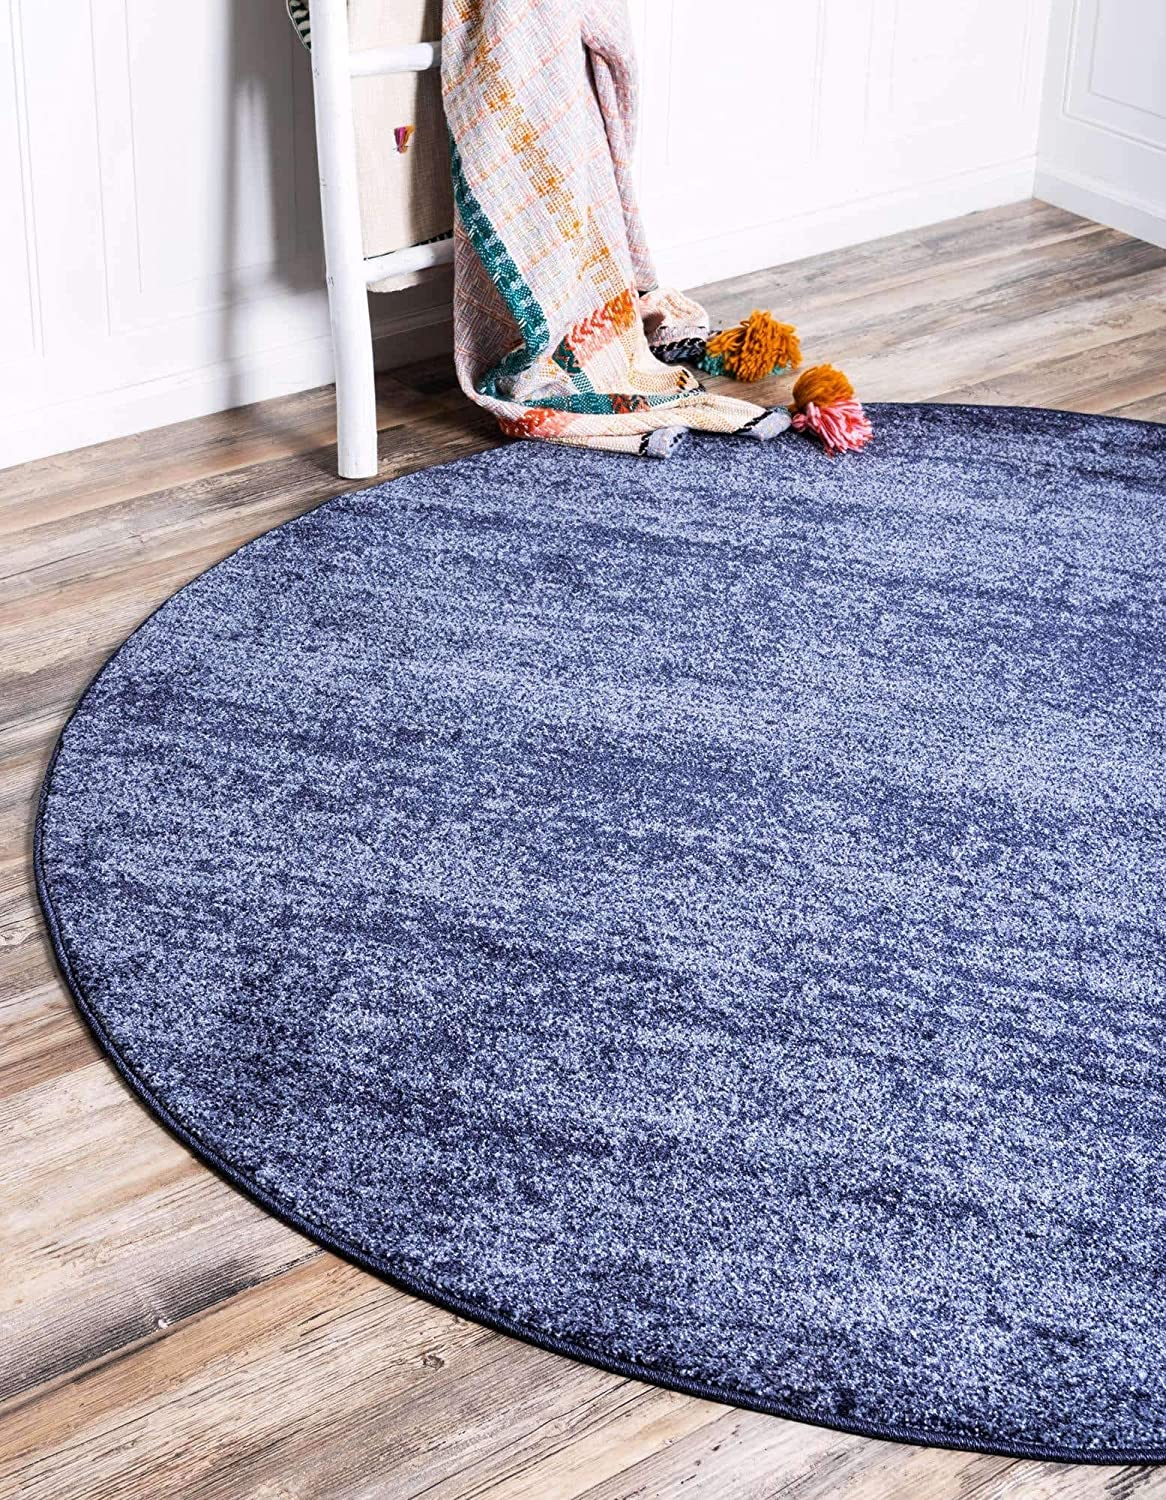 Unique Loom Del Mar Collection Area Latest item High quality Rug- Modern Transitional Ins